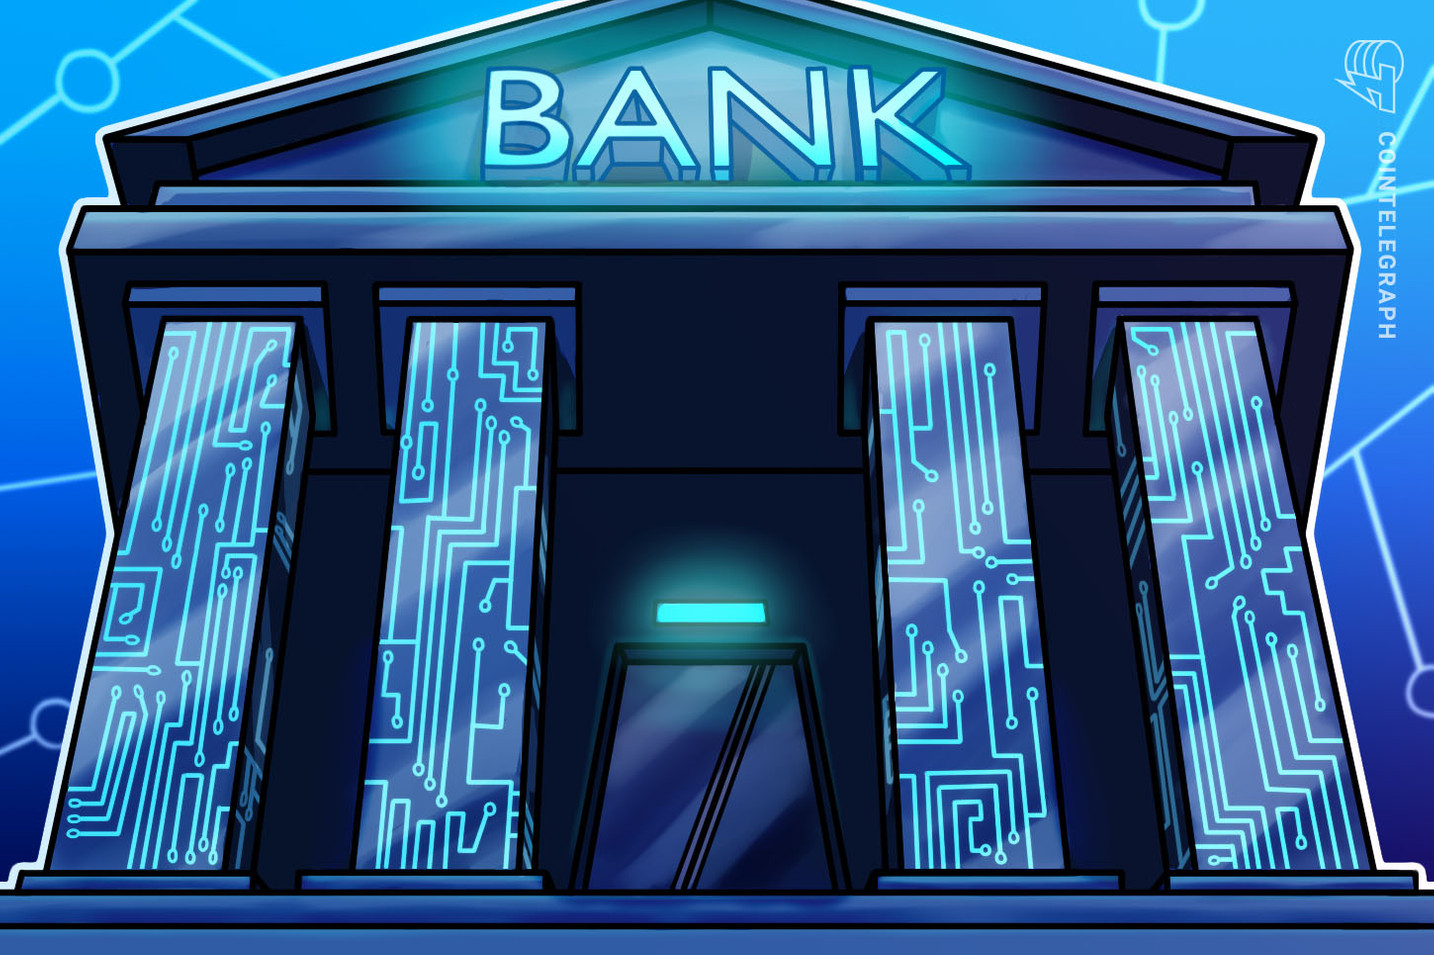 Bank of Cambodia: We'll Allow More Control With Blockchain Payments